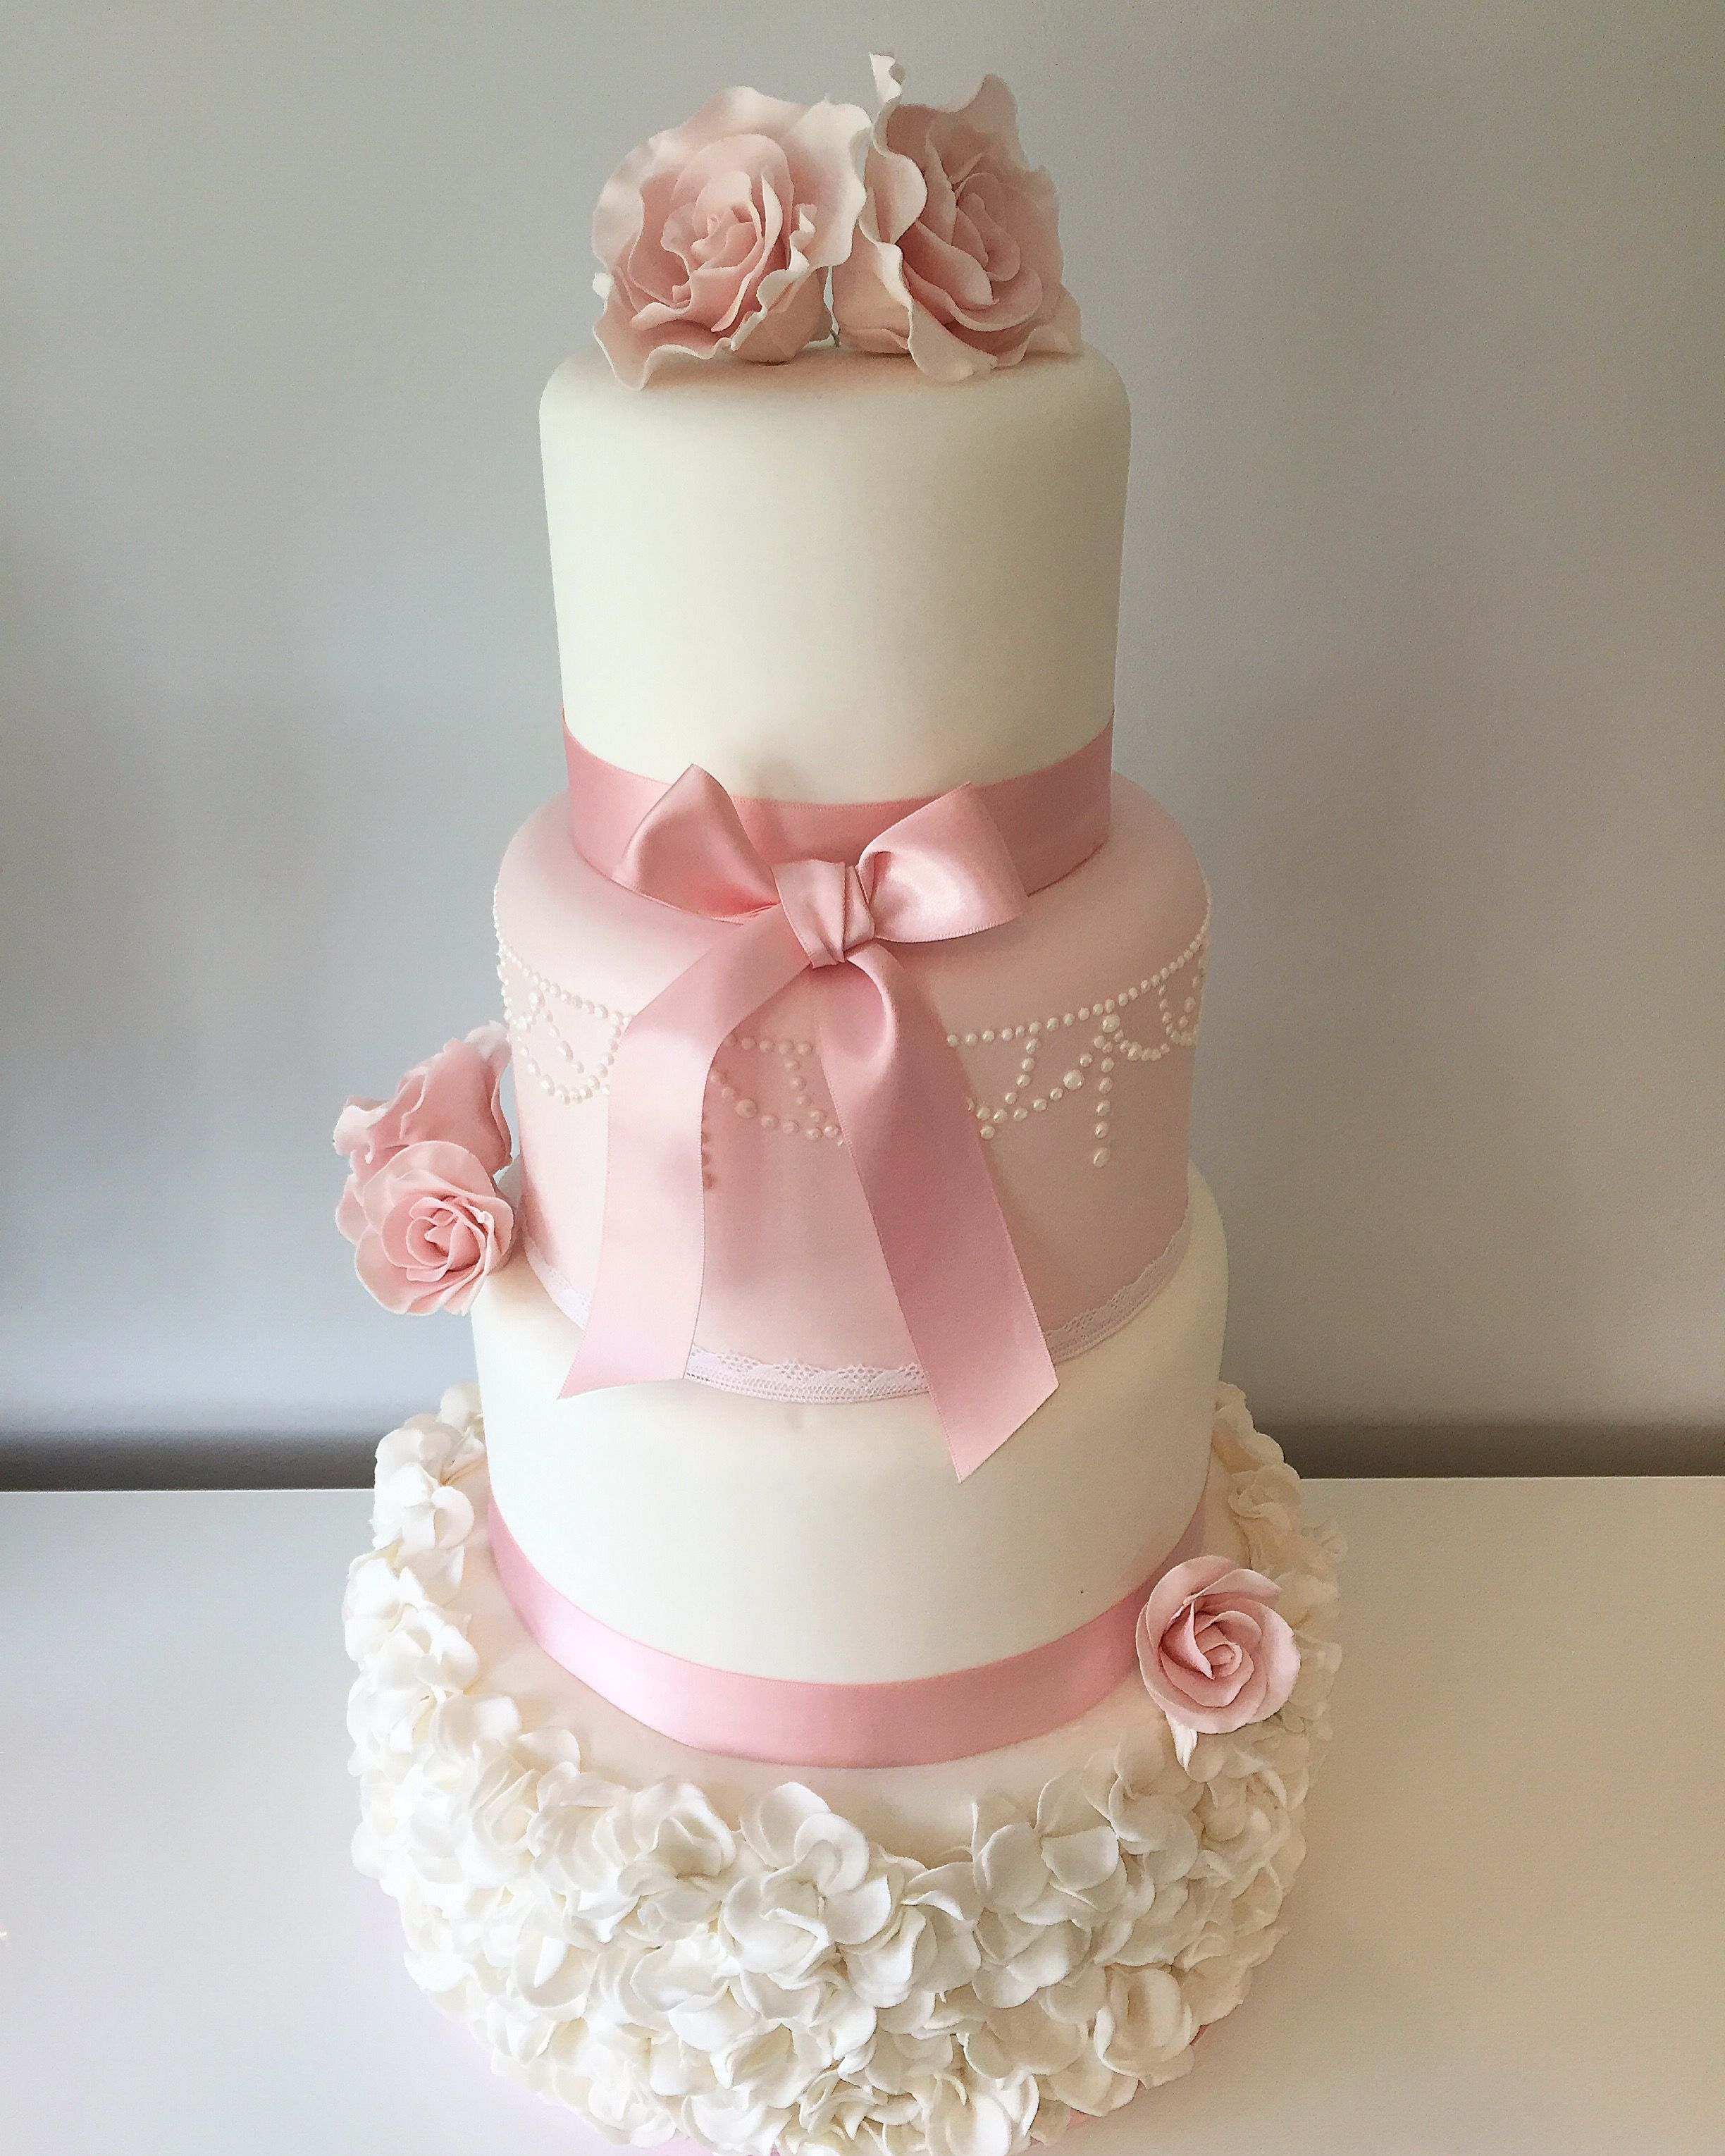 Traditional elegance with rounded edges, buttercream crumb coat used on this cake. This cake would fit well in any traditional English wedding with its ruffles, delicate piped work and roses.